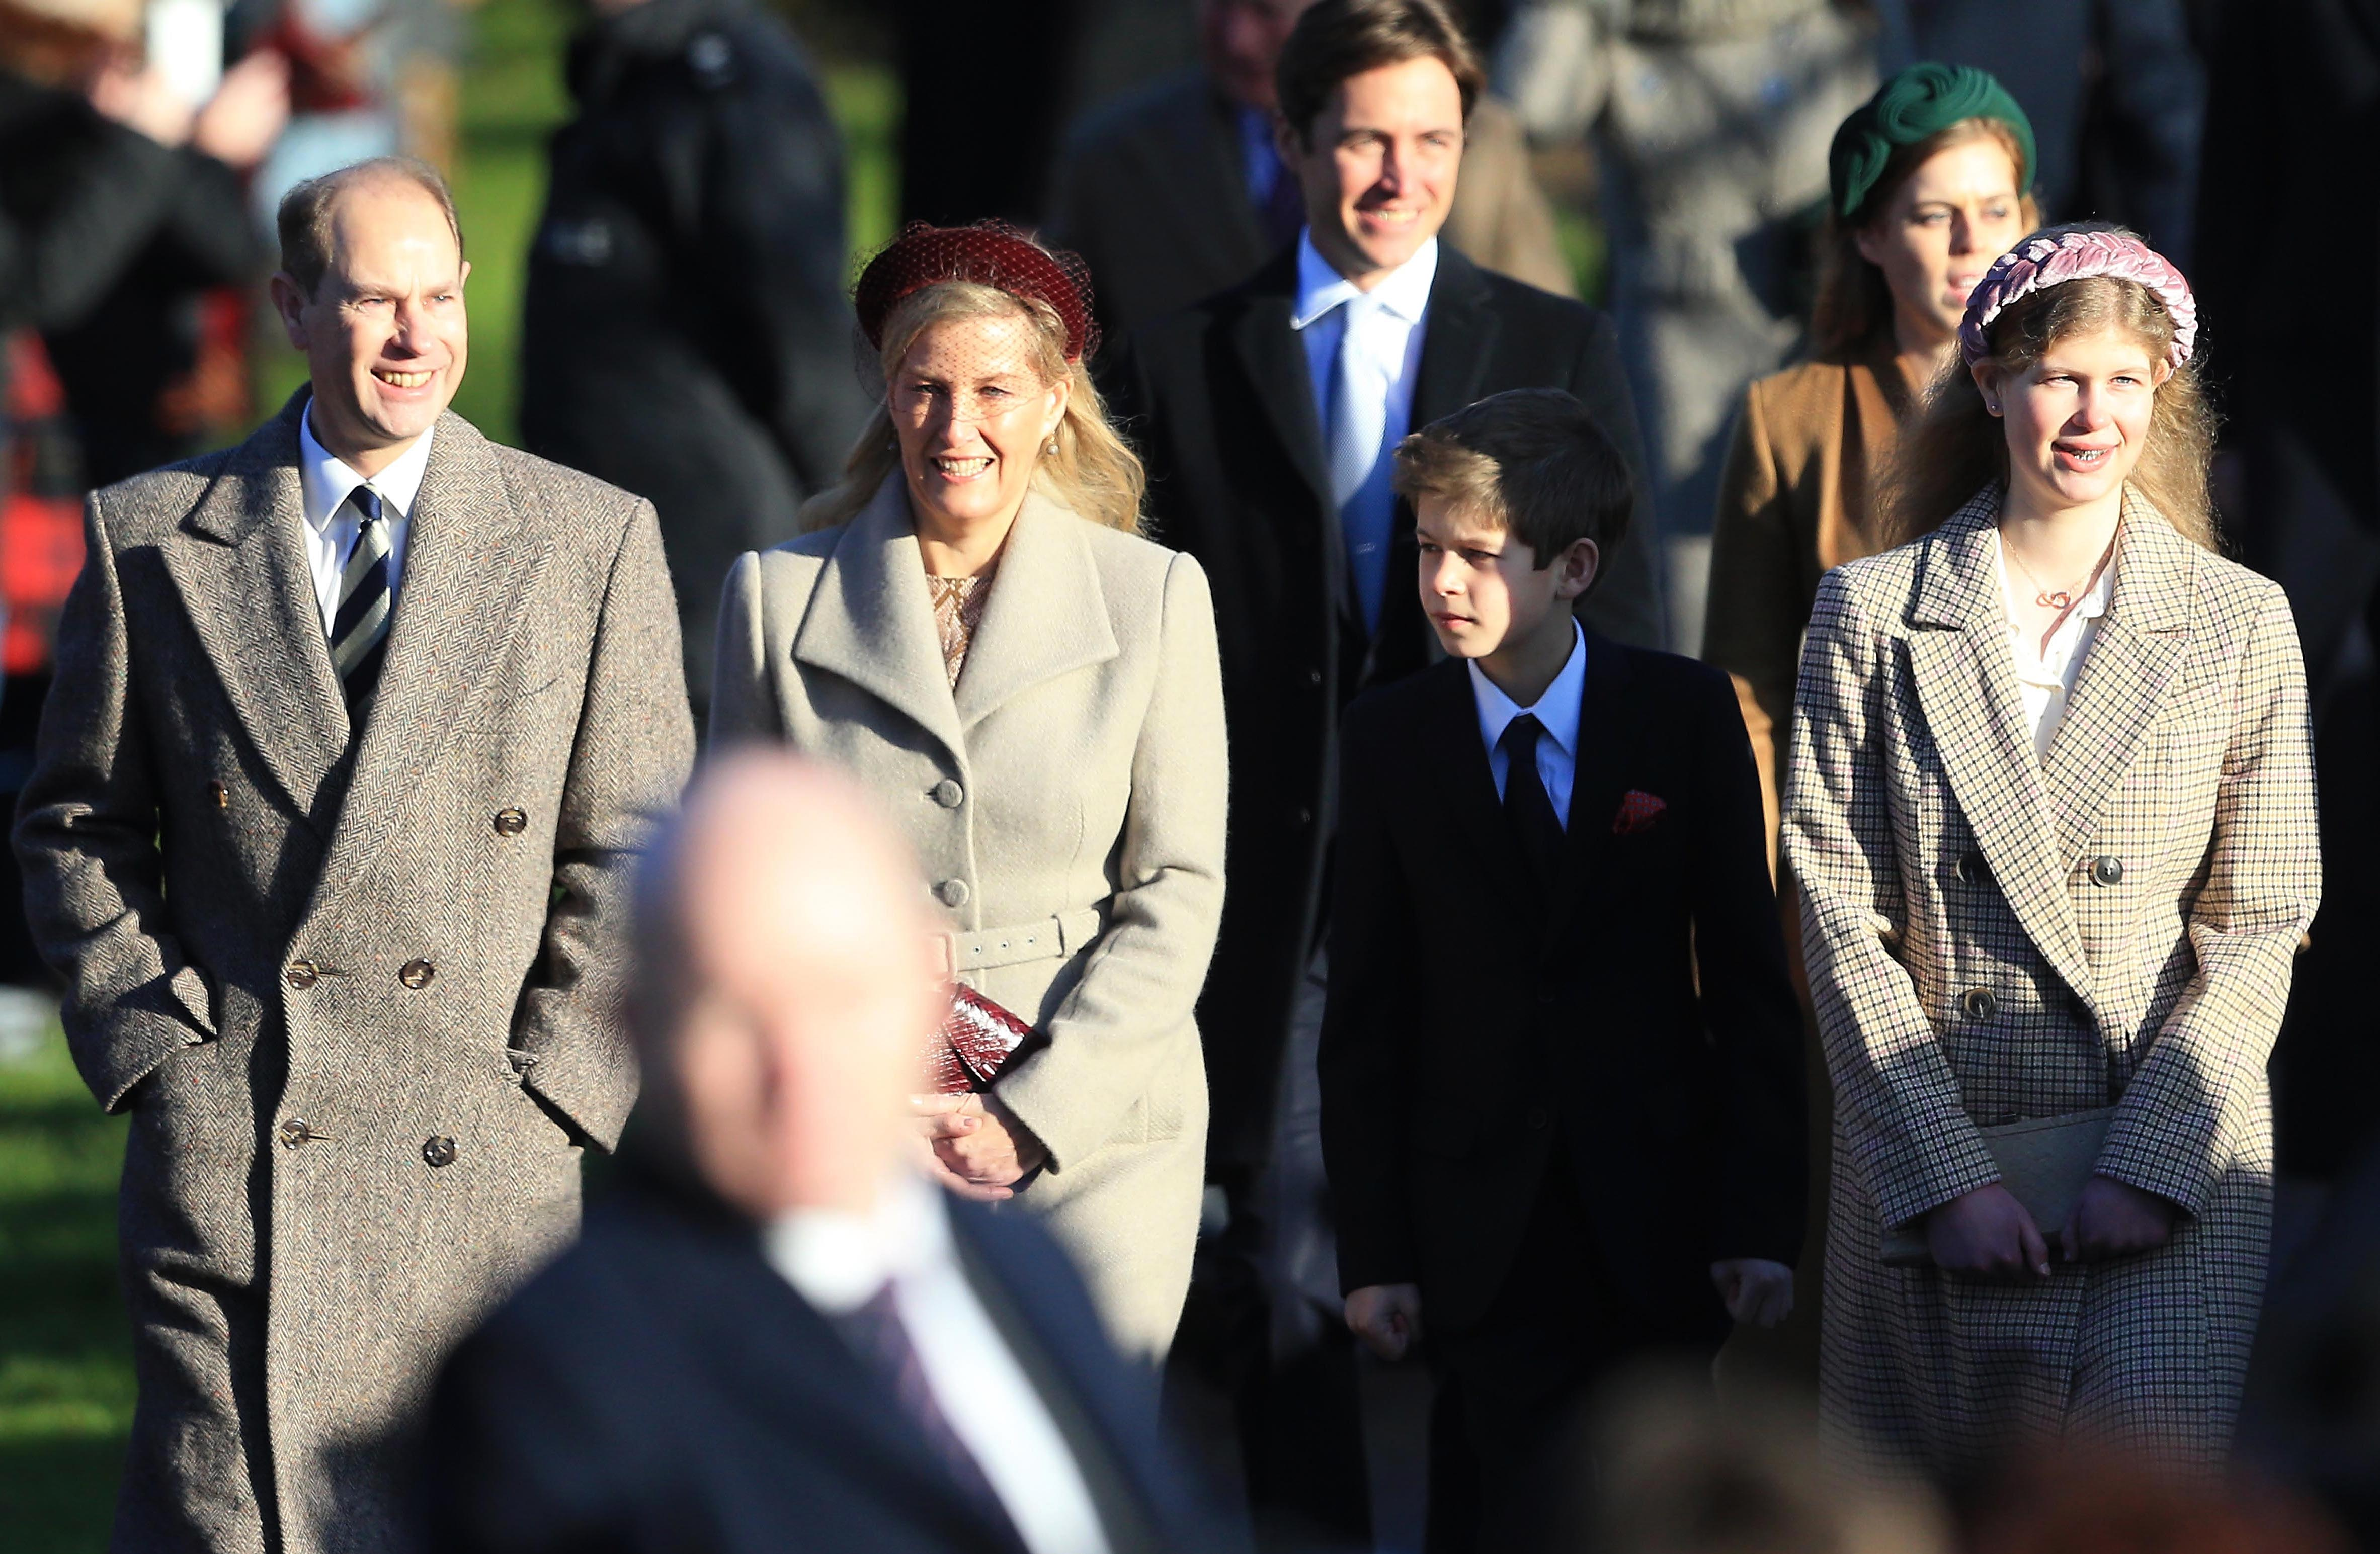 Prince Edward, Earl of Wessex, Sophie, Countess of Wessex, Lady Louise Windsor and James, Viscount Severn attend the Christmas Day Church service at Church of St Mary Magdalene on the Sandringham estate on December 25, 2019 in King's Lynn, United Kingdom.